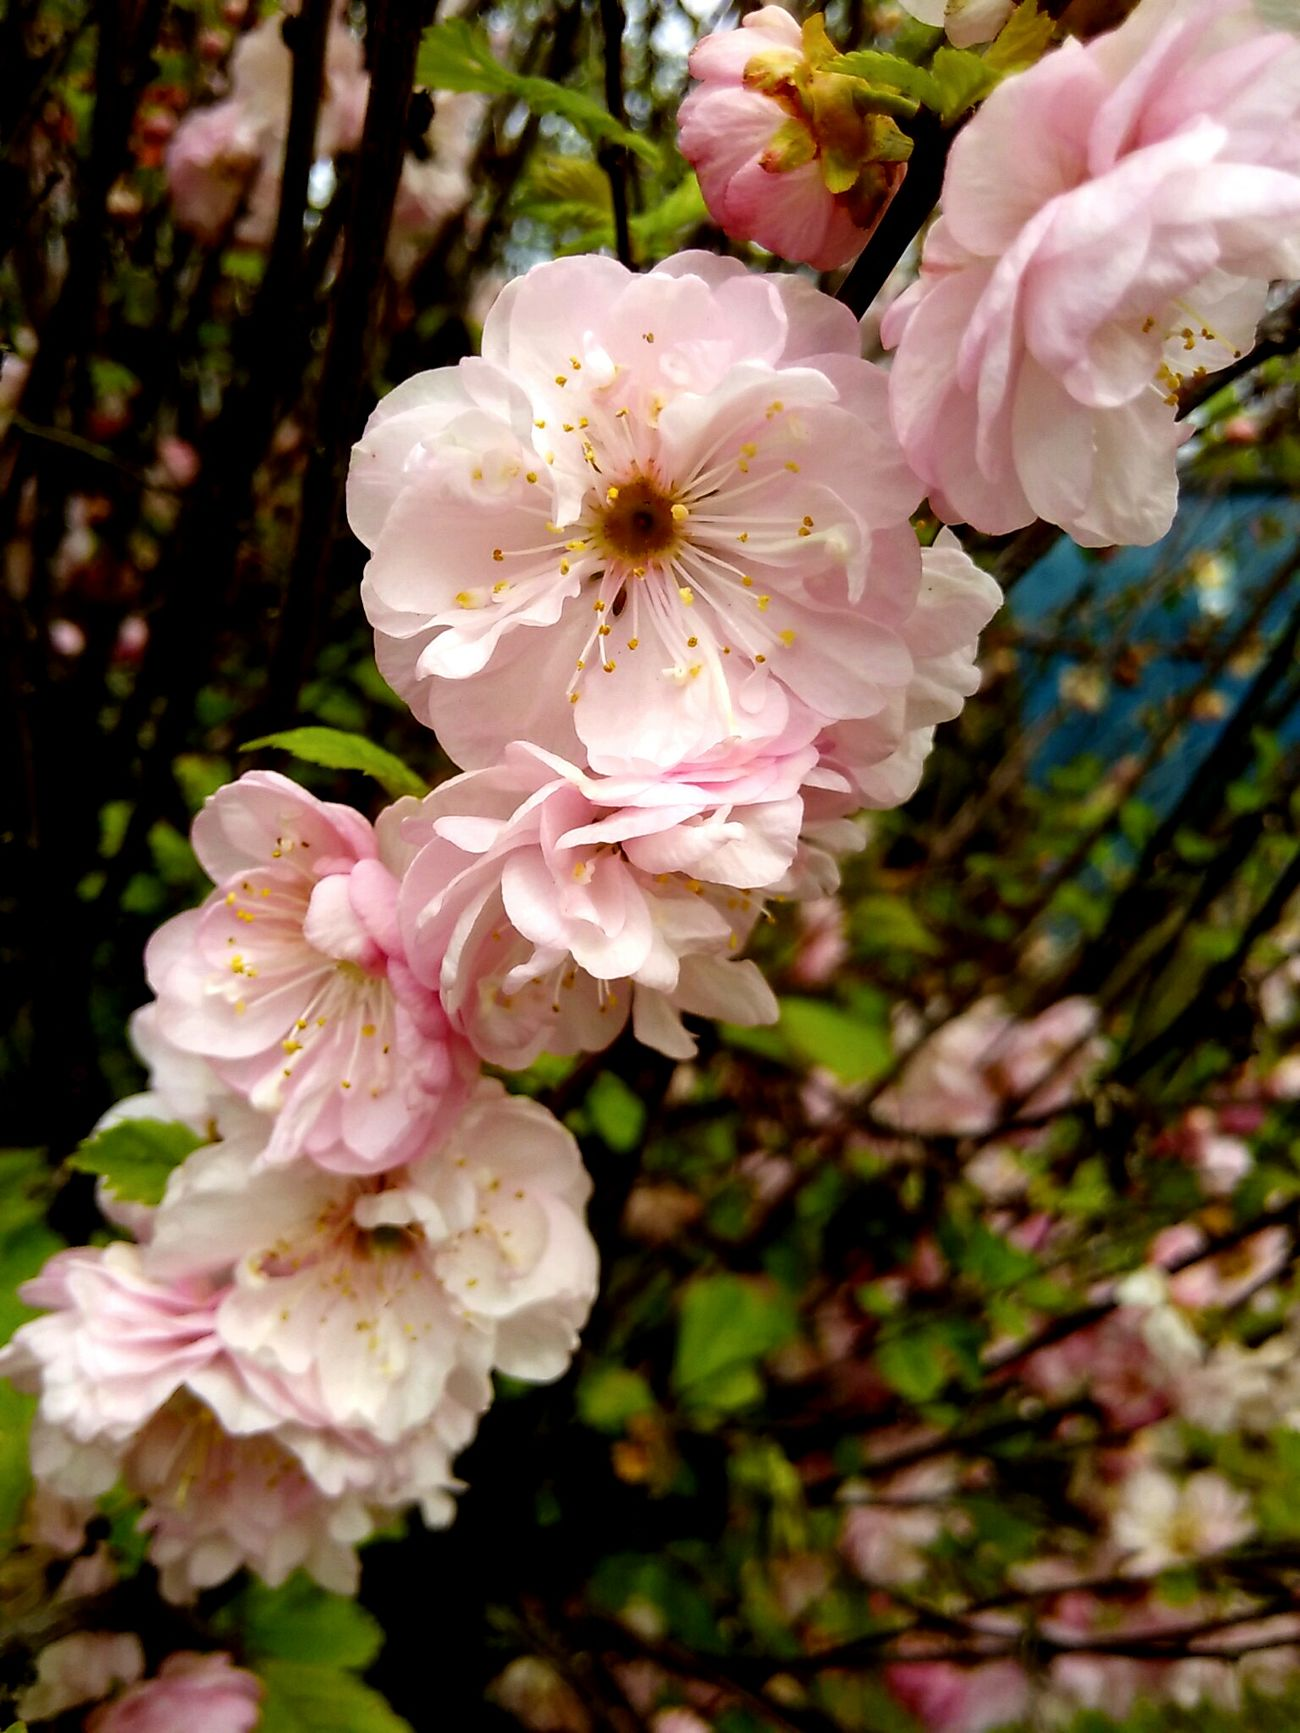 Flower Blossom Beauty In Nature Close-up Beautiful Flower Plant Springtime Prunus